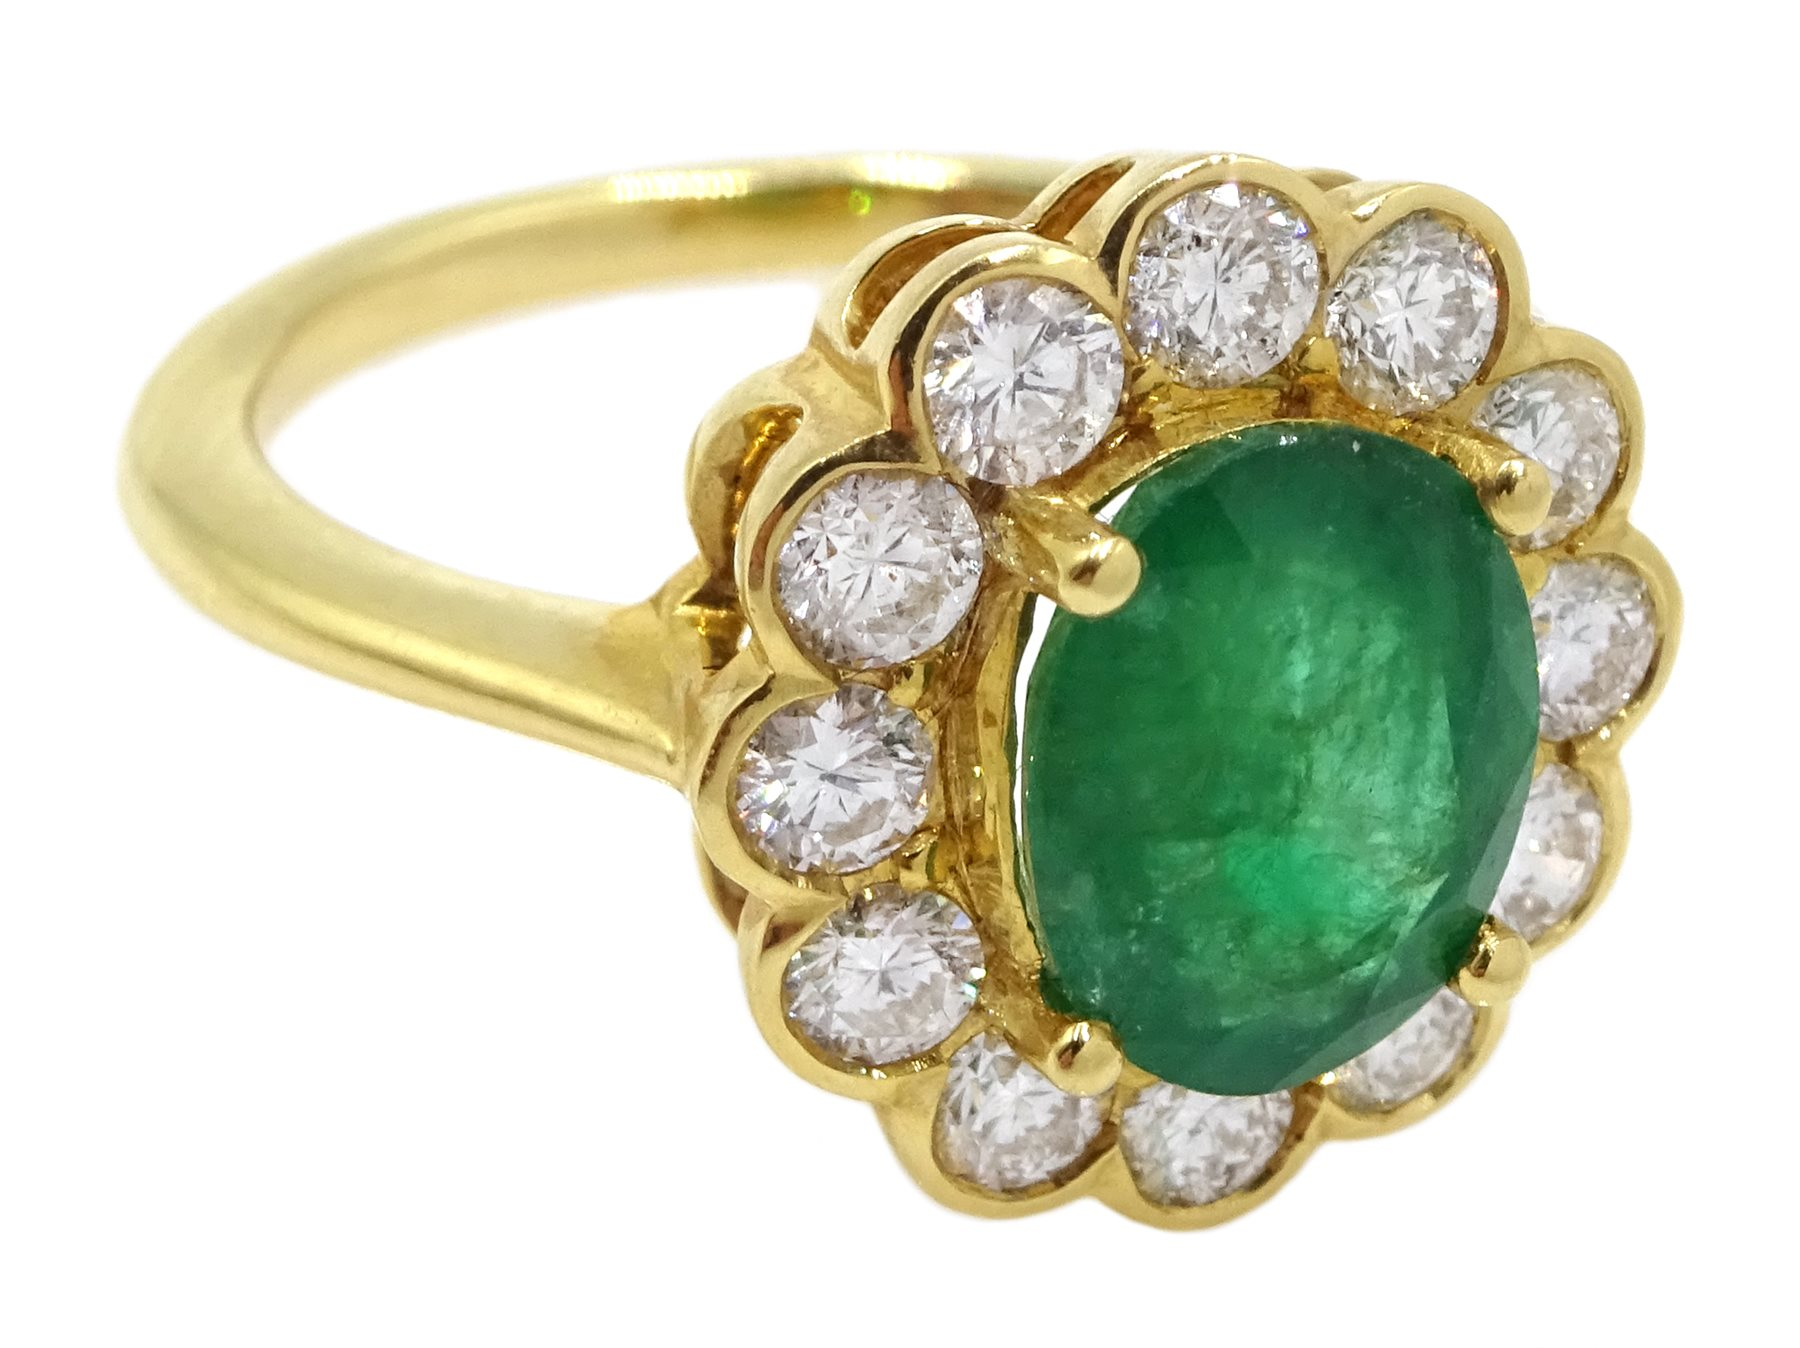 18ct gold oval emerald and diamond cluster ring - Image 3 of 5